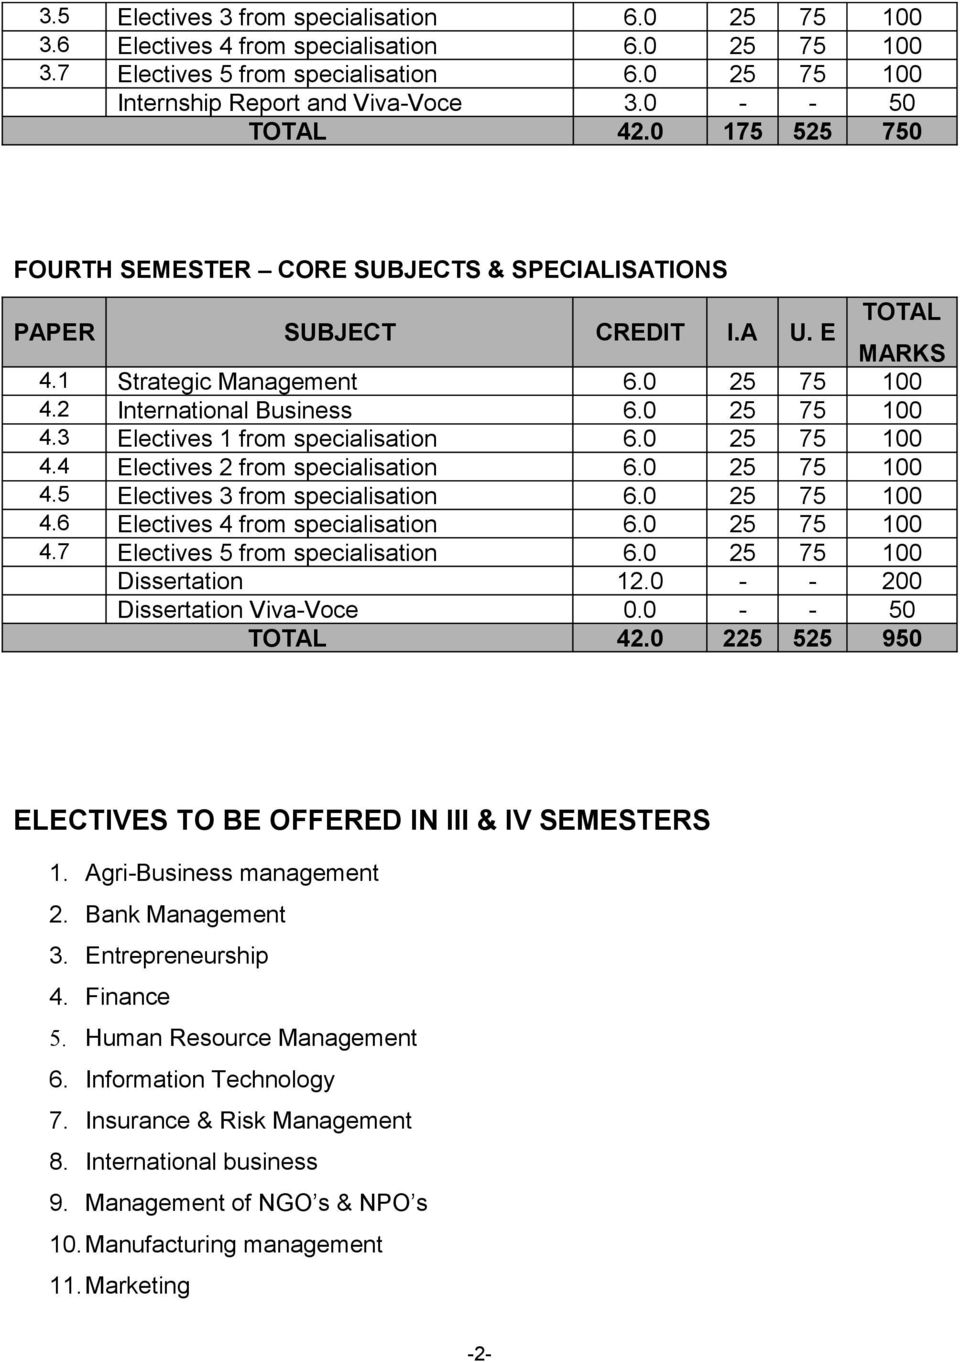 0 25 75 100 4.3 Electives 1 from specialisation 6.0 25 75 100 4.4 Electives 2 from specialisation 6.0 25 75 100 4.5 Electives 3 from specialisation 6.0 25 75 100 4.6 Electives 4 from specialisation 6.